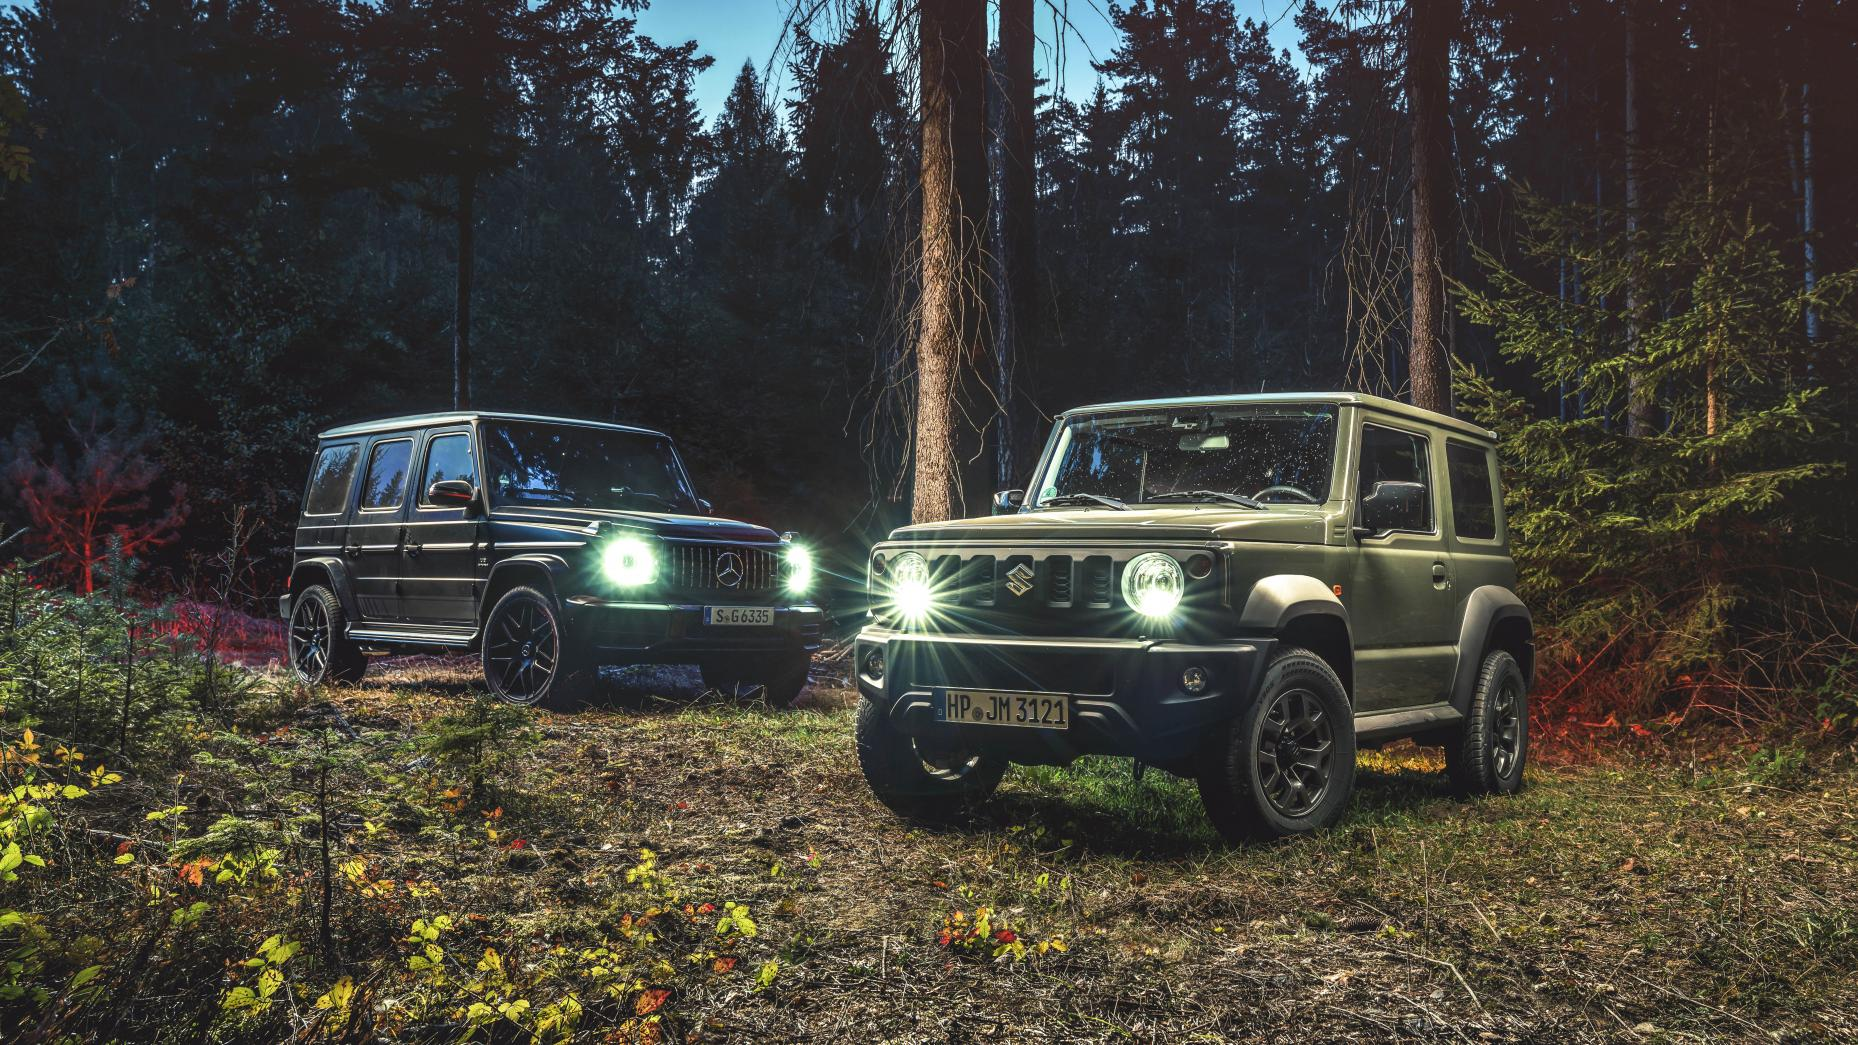 Mercedes-AMG G63 and Suzuki Jimny: TG mag's Apocalypse Survival Tools of the Year